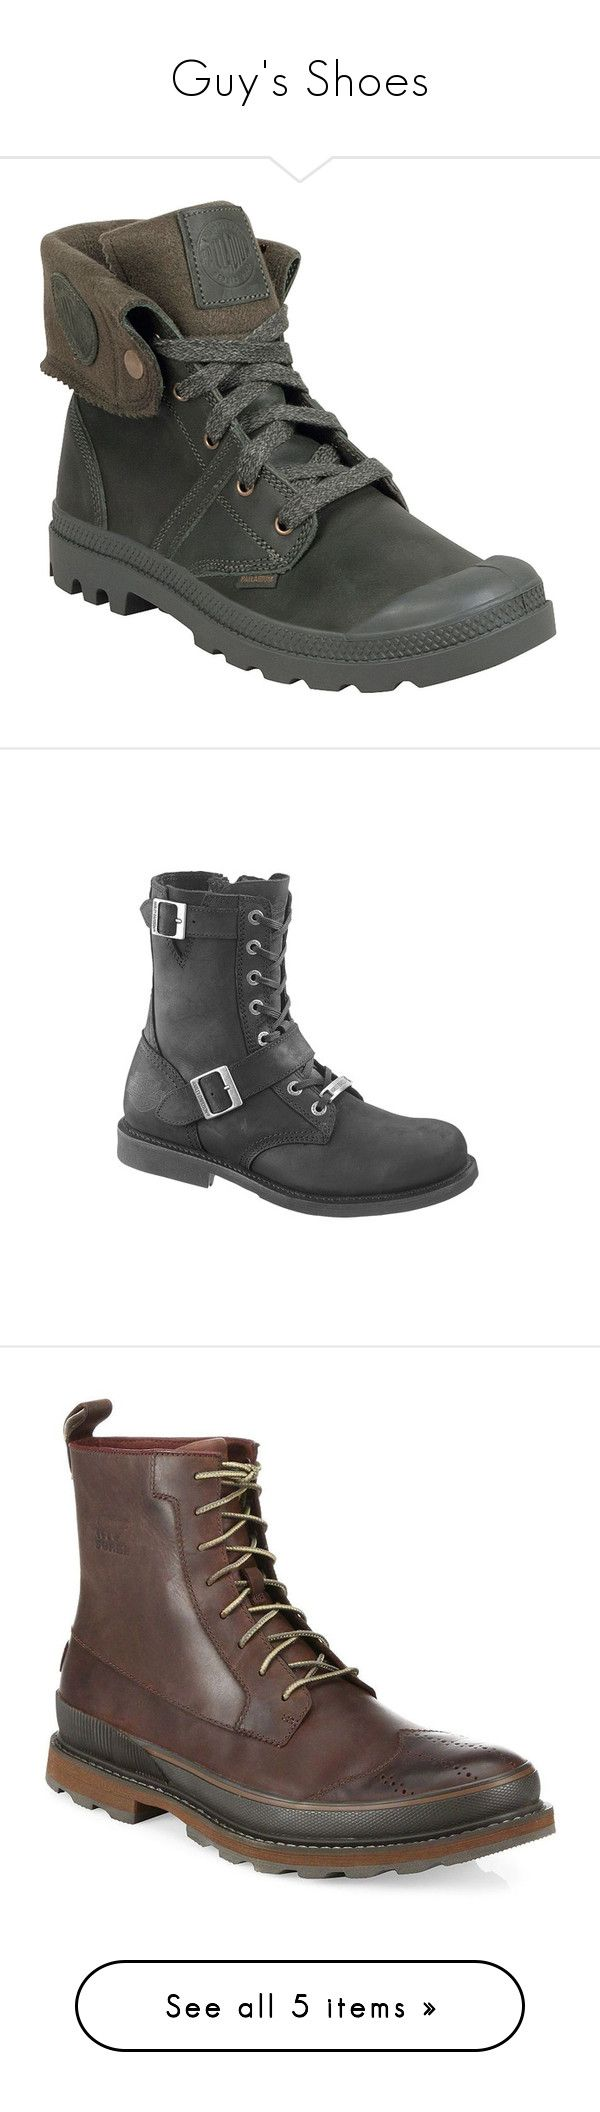 """""""Guy's Shoes"""" by persephone-tbf ❤ liked on Polyvore featuring men's fashion, men's shoes, men's boots, men's work boots, green, mens combat boots, mens lace up boots, palladium mens boots, mens army boots and men's fold over combat boots"""